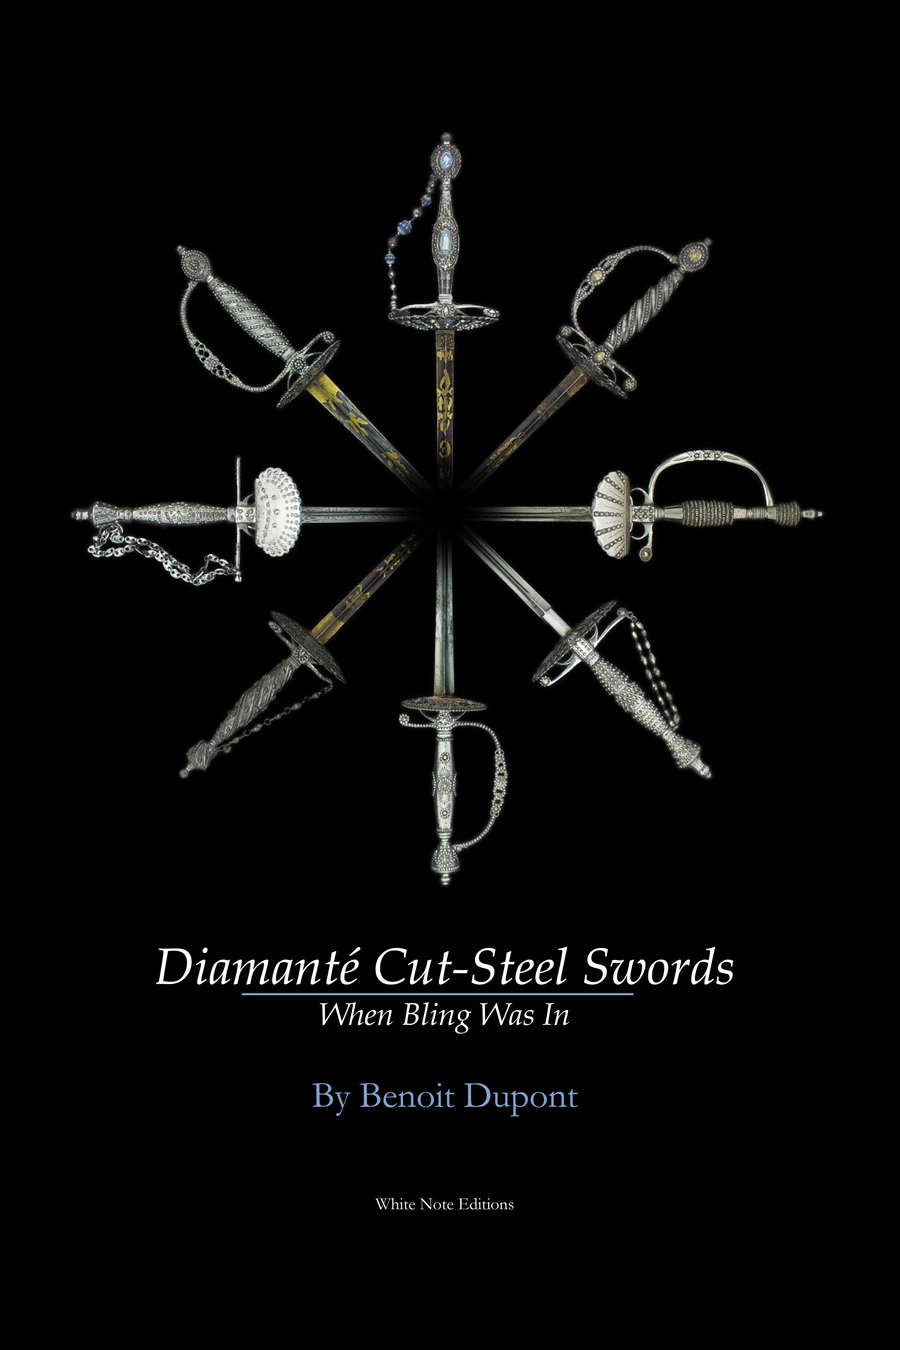 Book Cover ring of swords